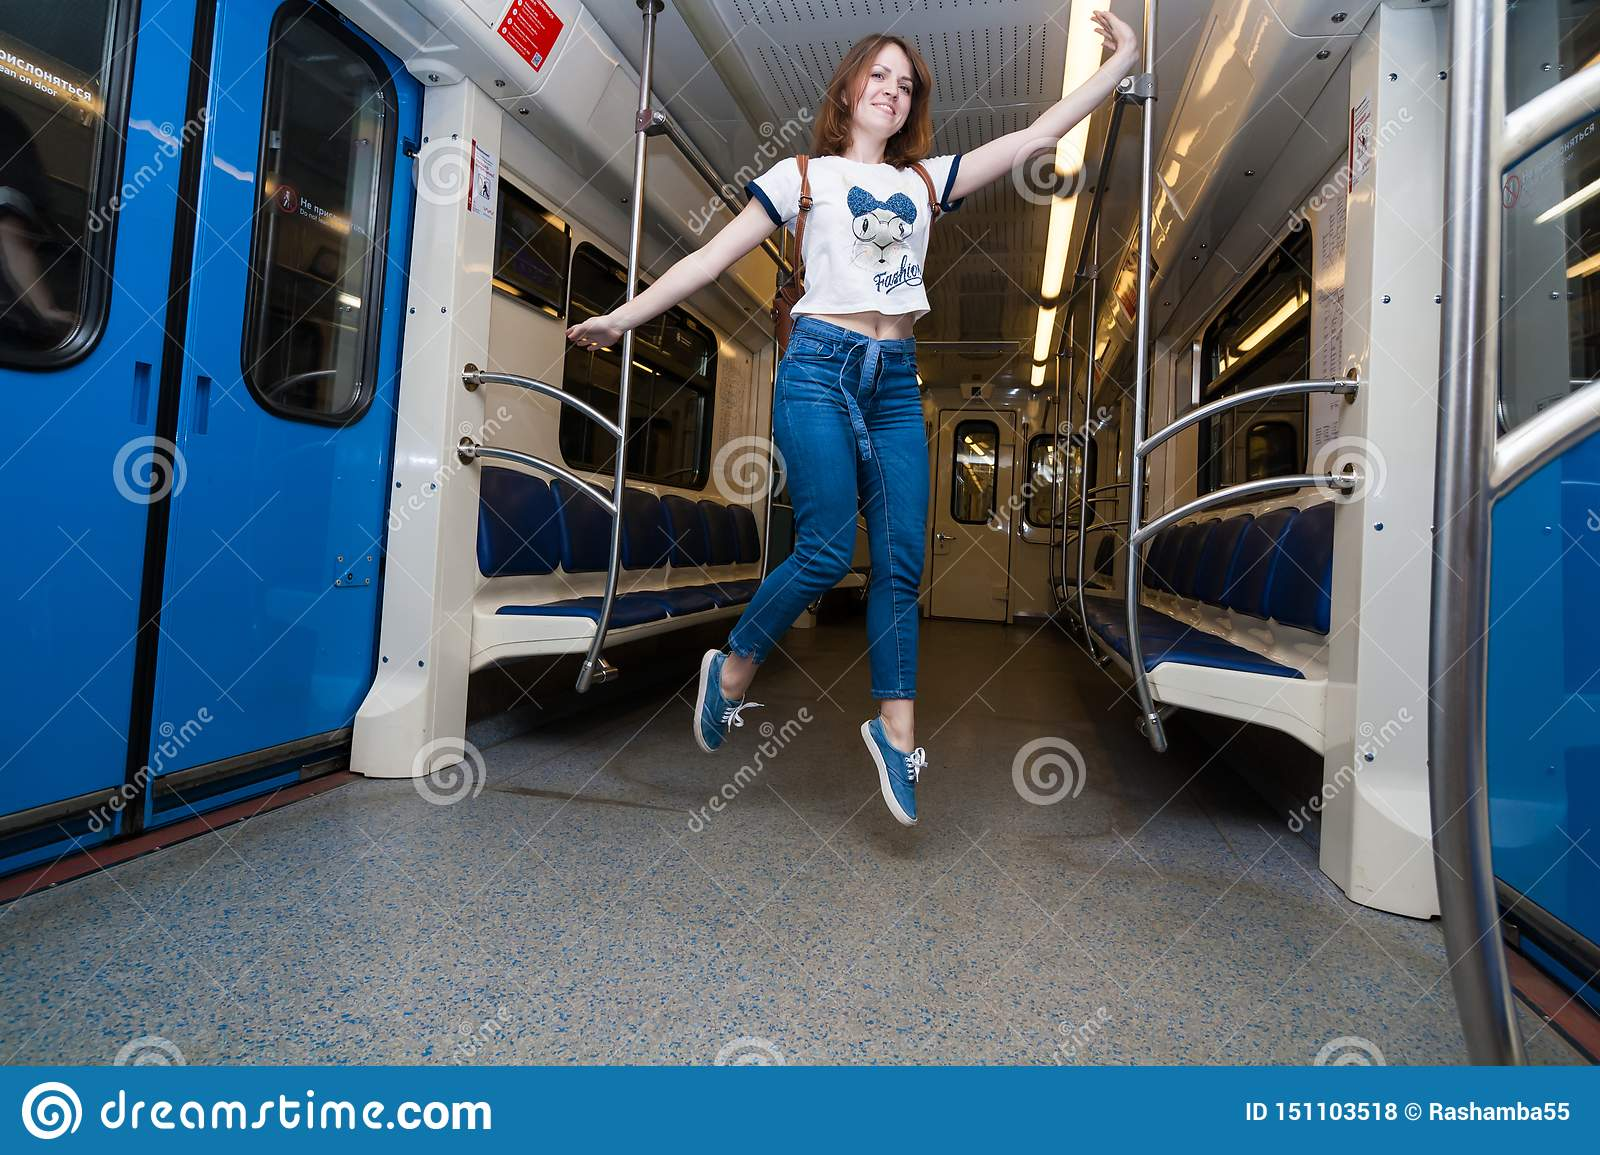 Girl jump in empty subway train. She is in blue jeans and white t-short